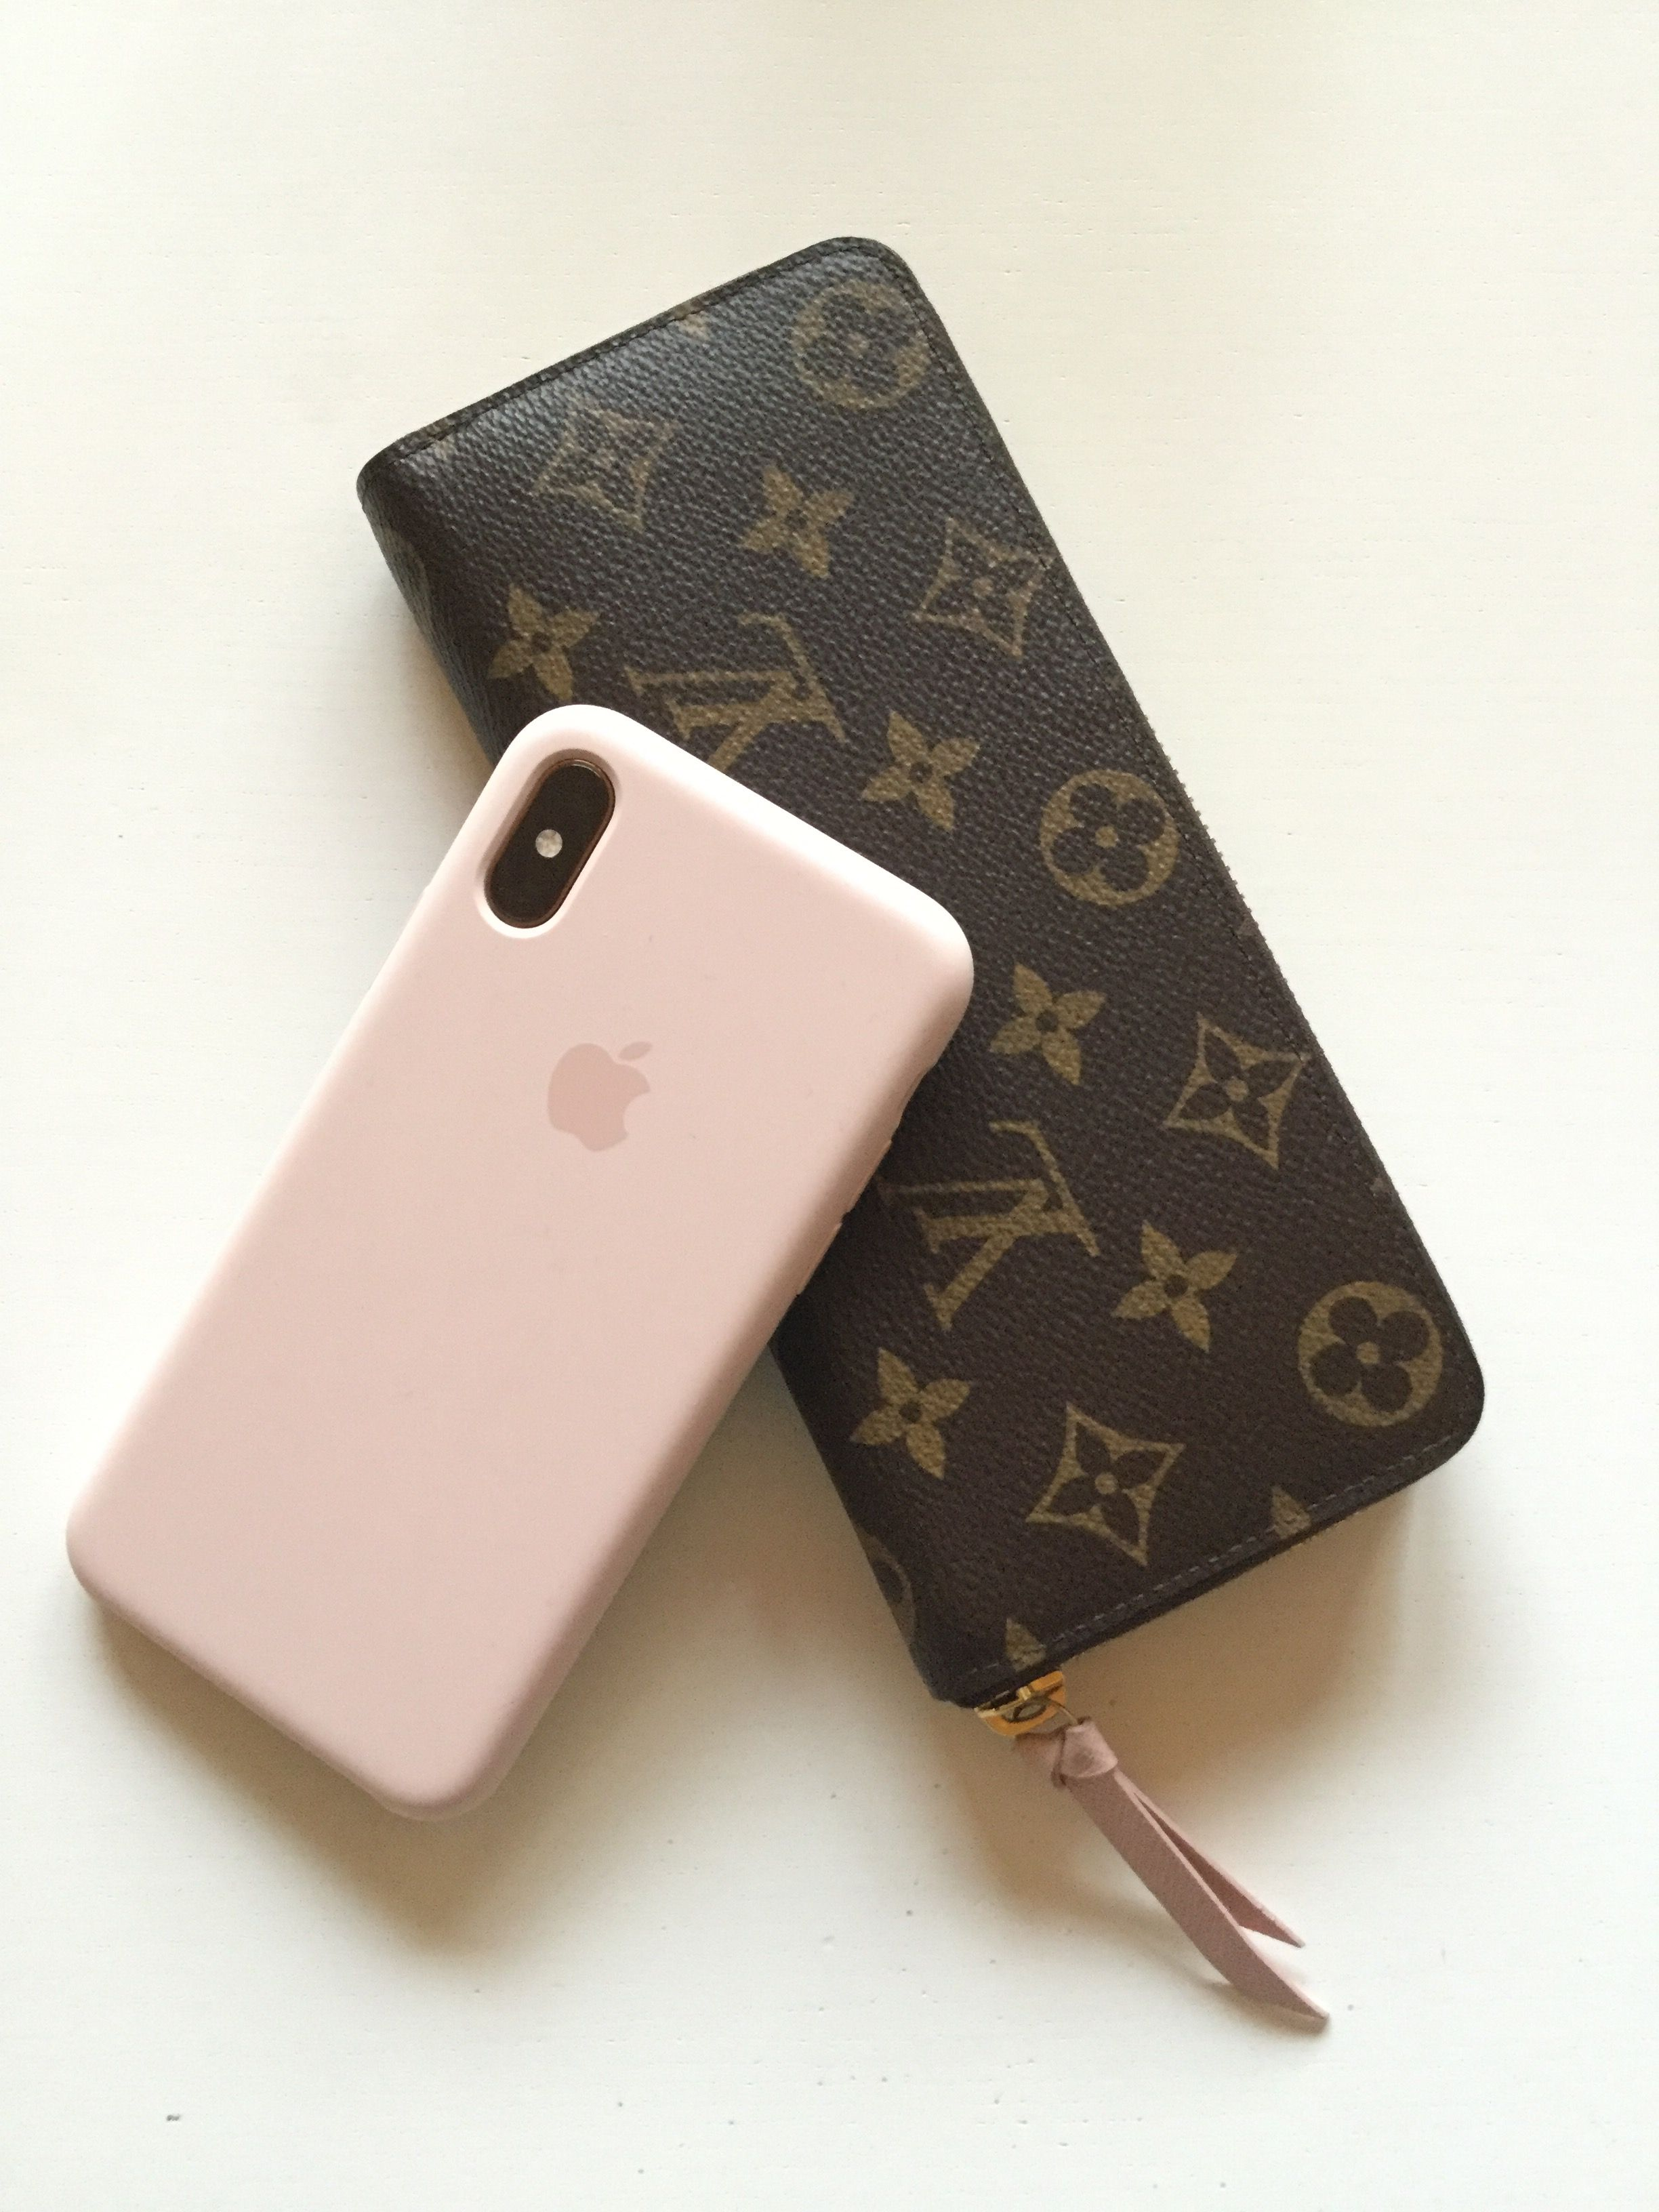 Louis Vuitton wallet Clemence +iPhone Xs silicone case pink sand ... aada932a43c